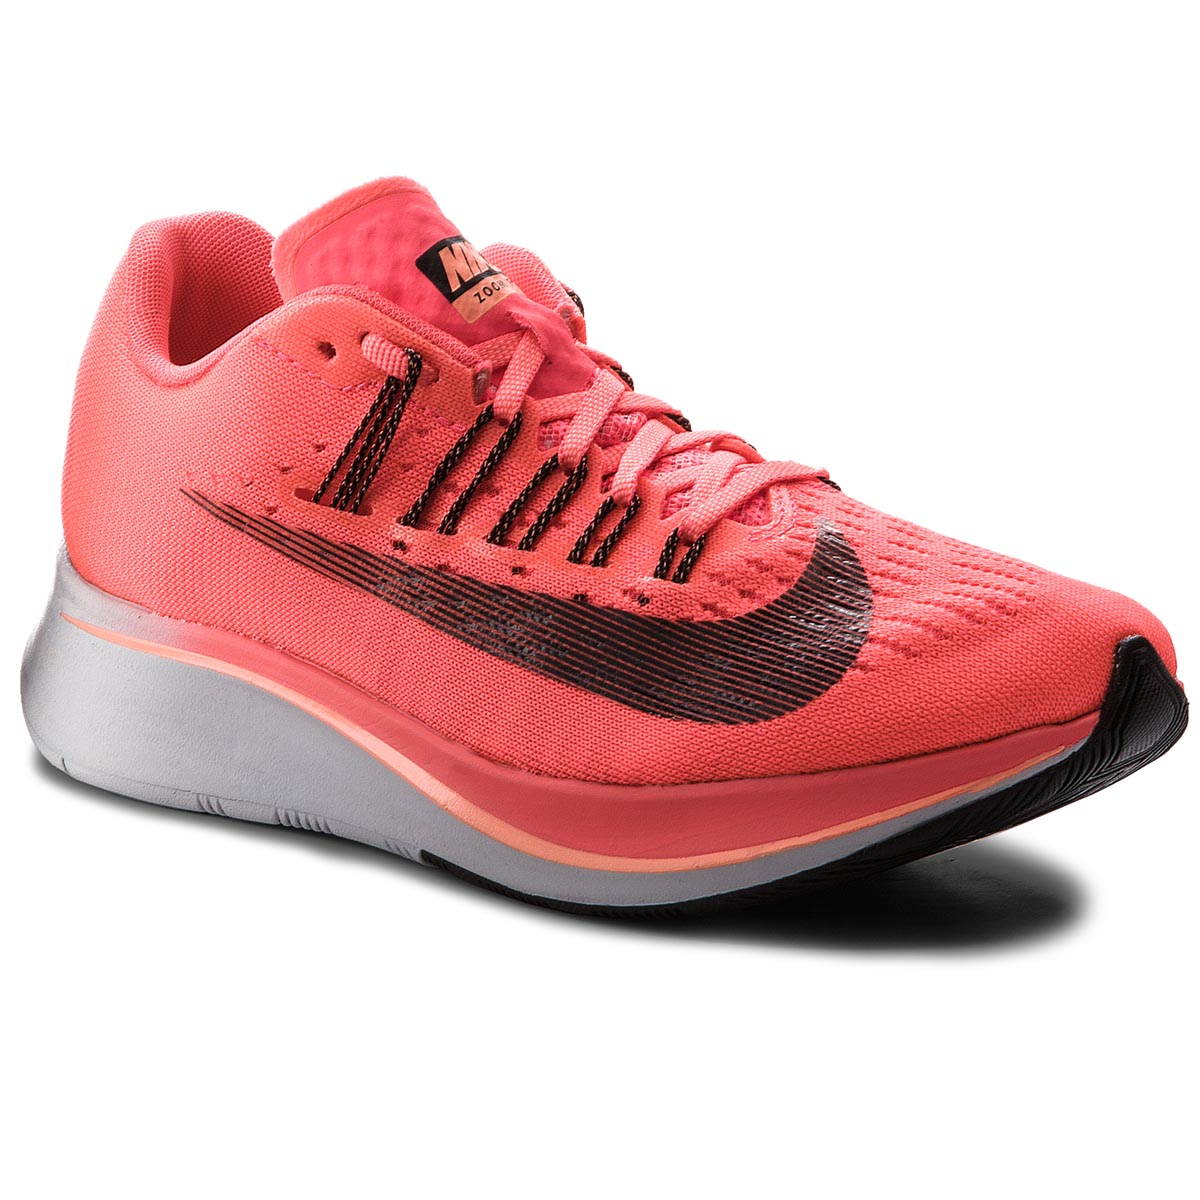 Buty NIKE - Zoom Fly 897821 600 Hot Punch/Black/Crimson Pulse